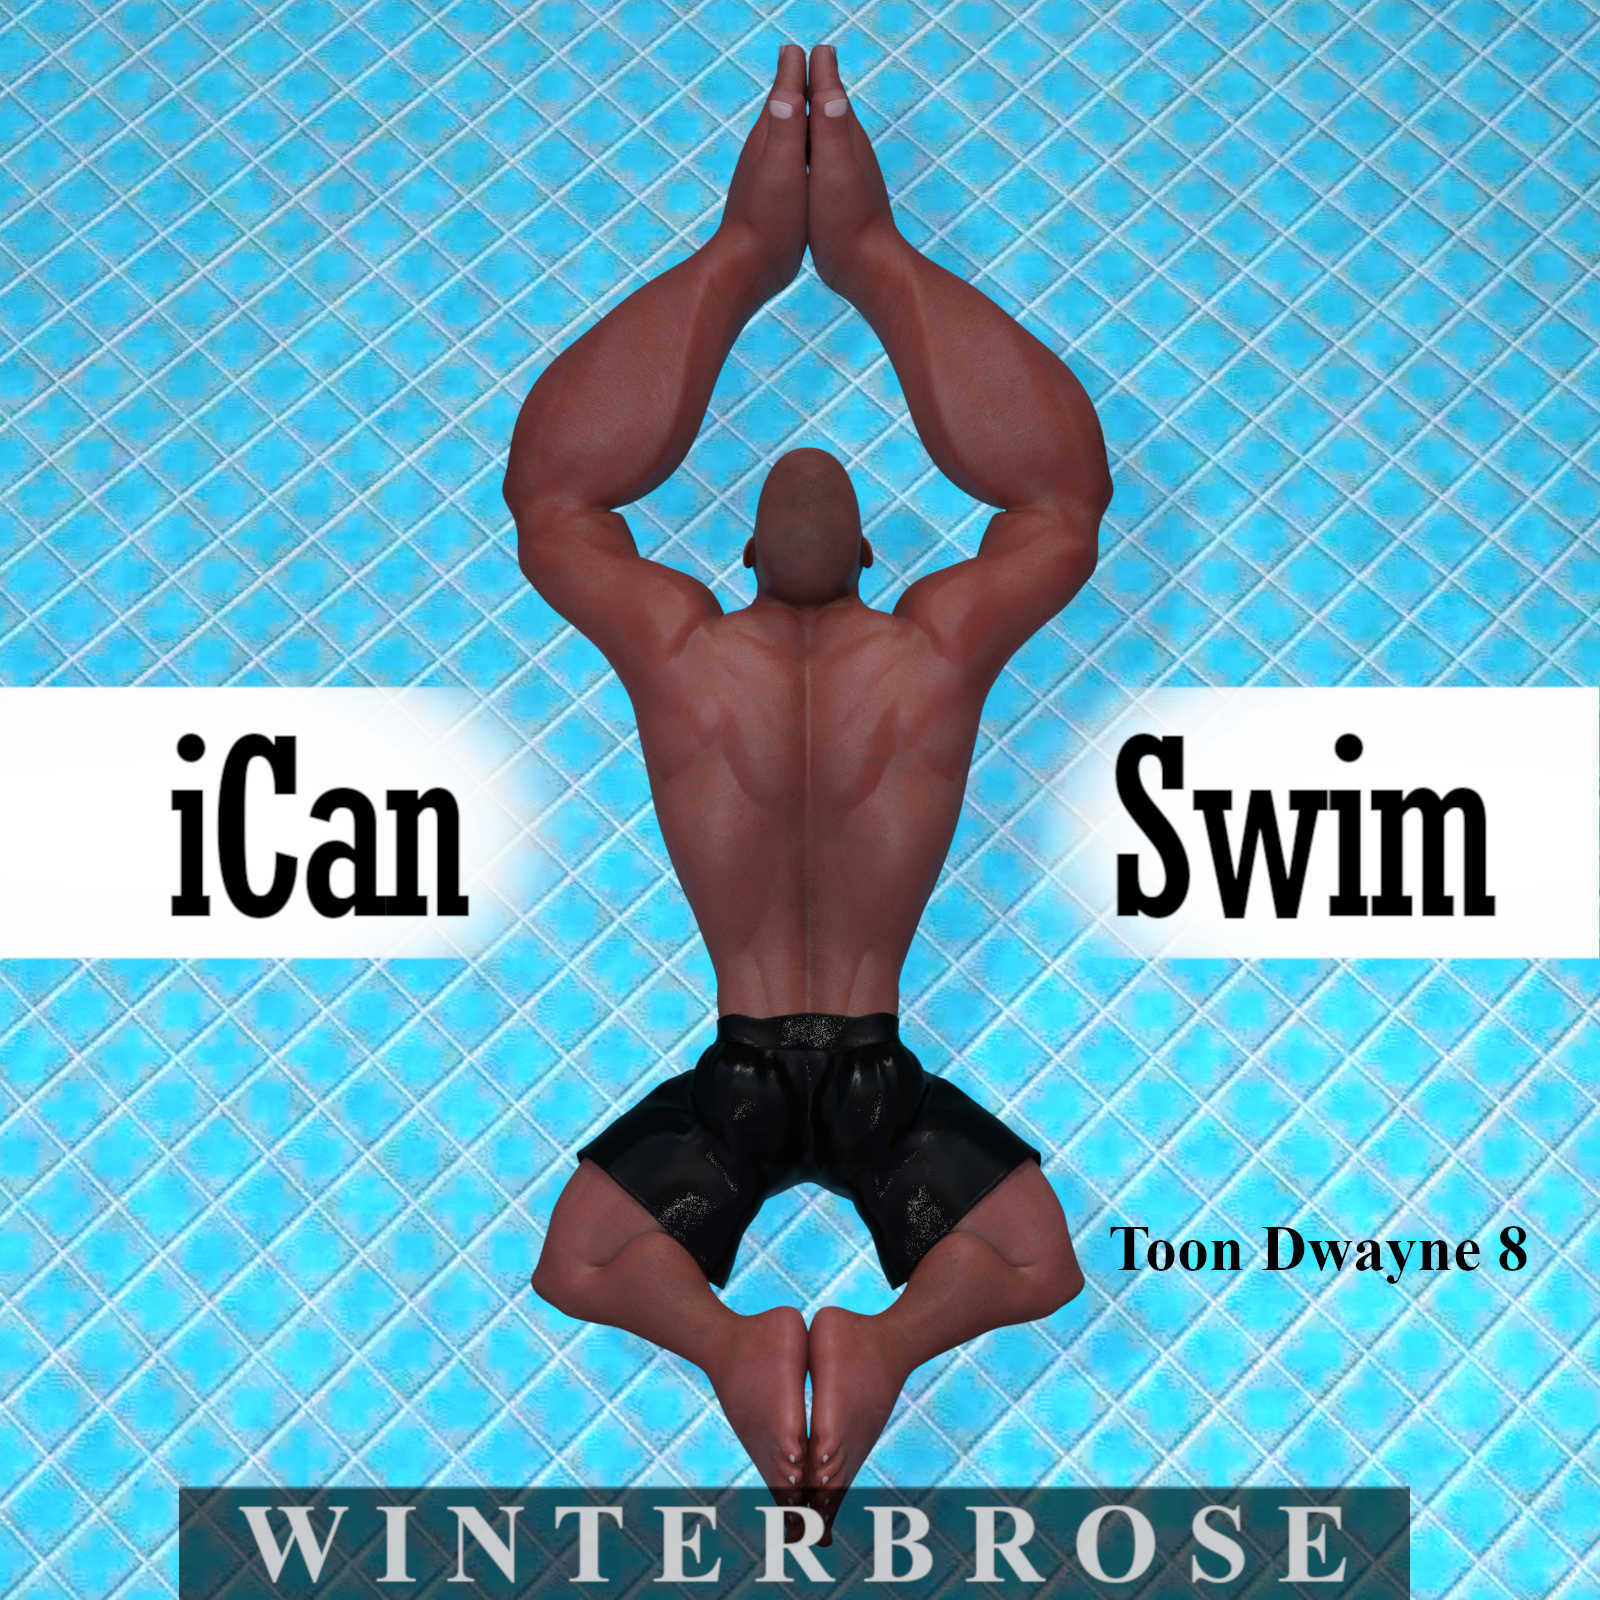 iCan SWIM, Swimming Poses for Toon Dwayne 8